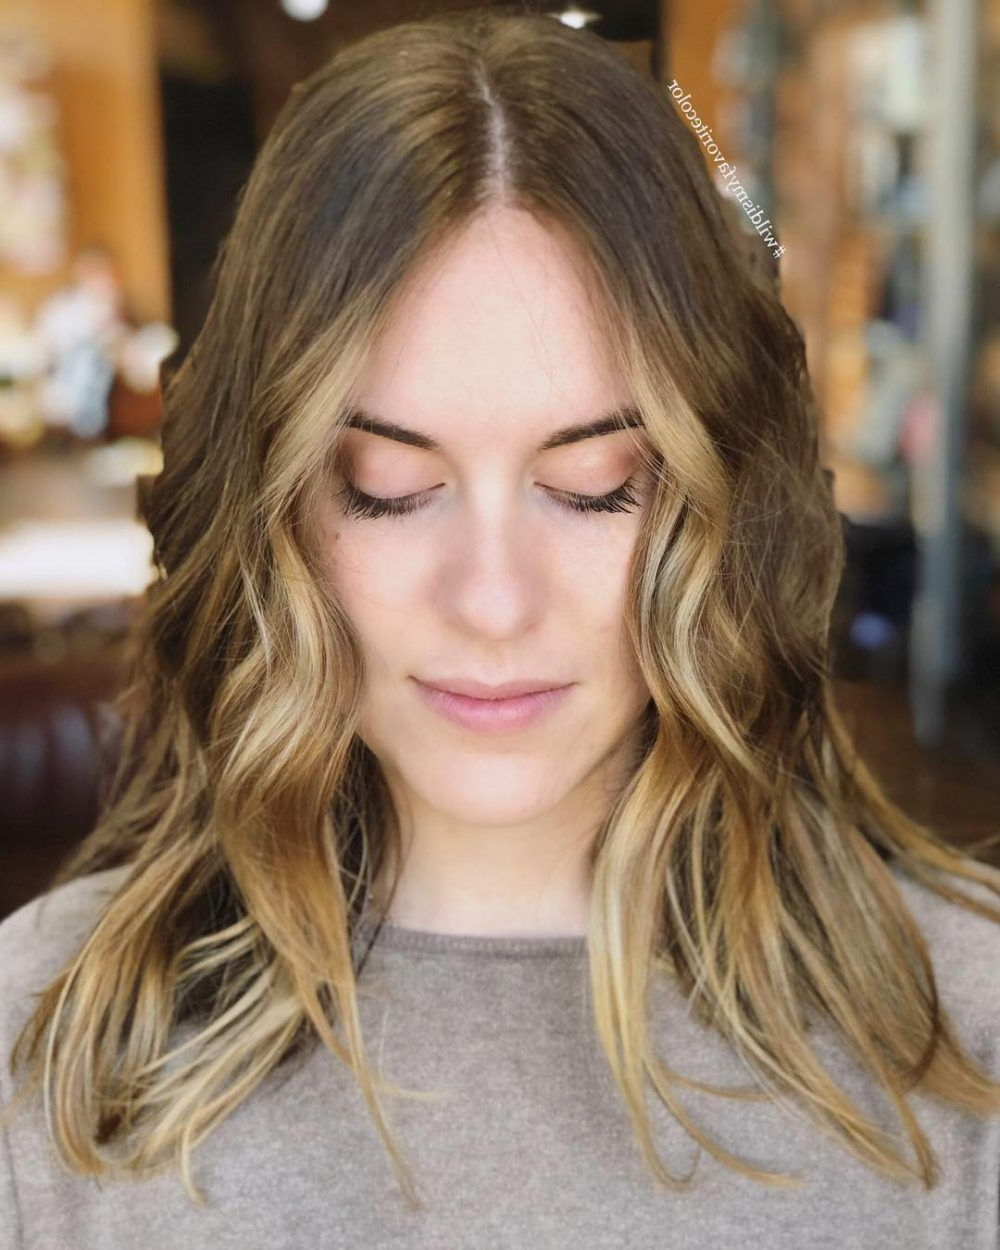 17 Flattering Medium Hairstyles For Round Faces In (View 1 of 20)